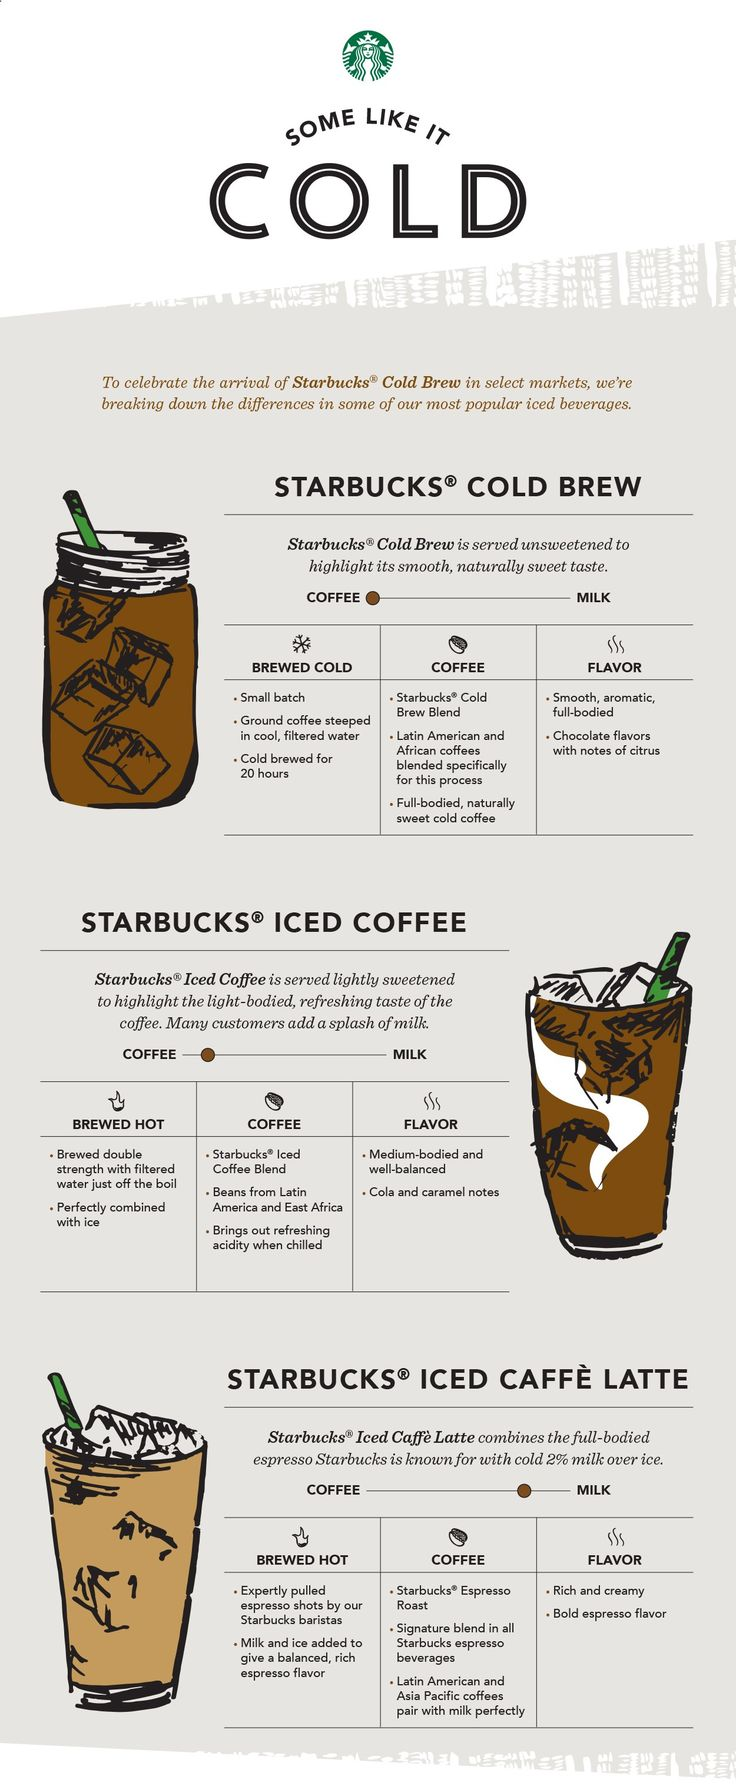 Youll want to switch over to cold brew after you read this article. See why you should try cold-brew and why its better for you than iced coffee. Stay fit and slim with cold brew coffee.